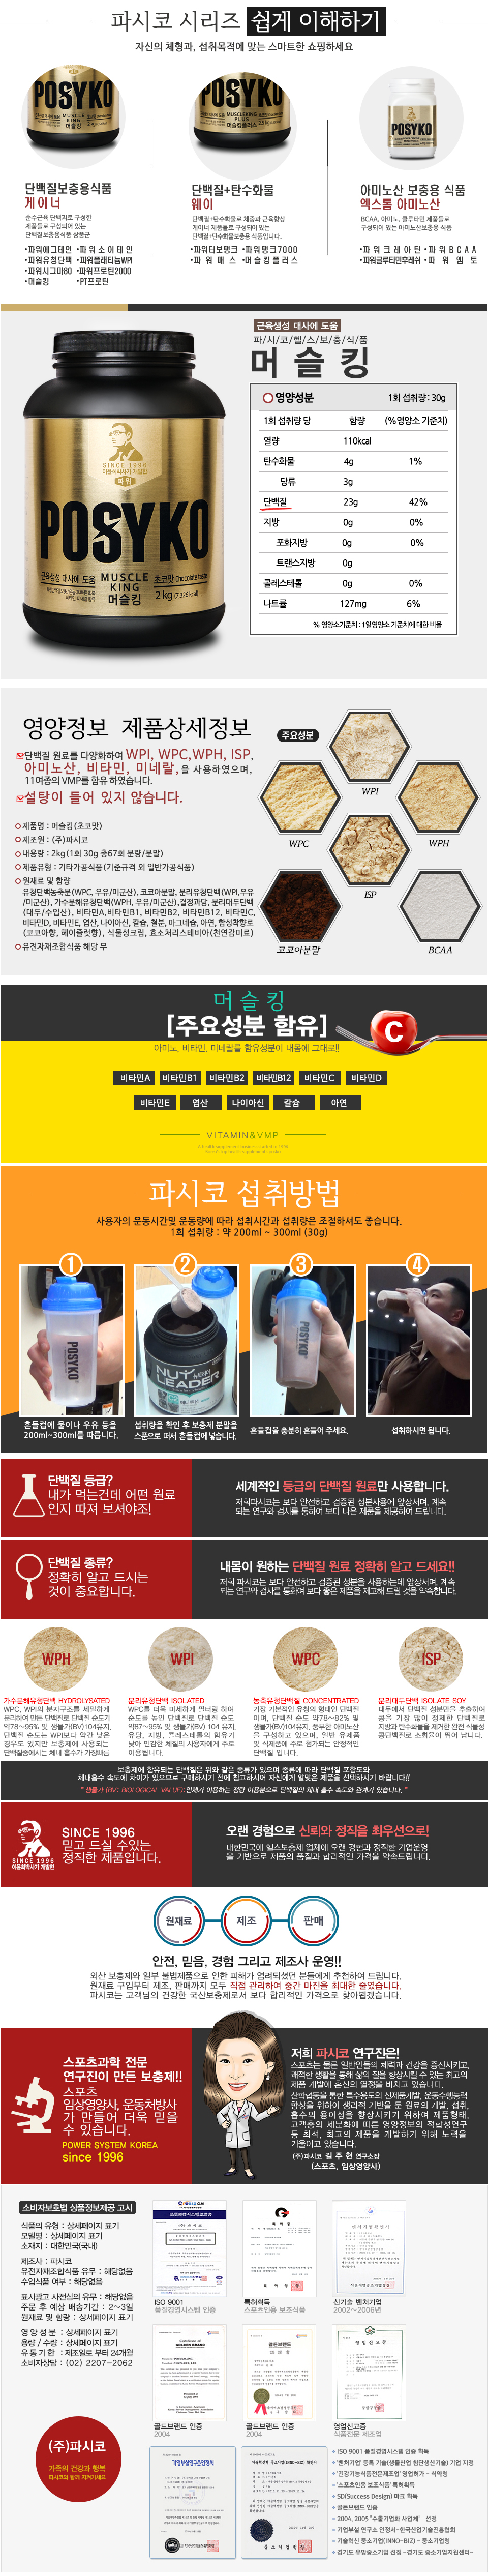 [ etc ] Muscleking Chocolate Flavor 2Kg (Weight Training) Protein Supplement/Health Supplement/Shaker Included